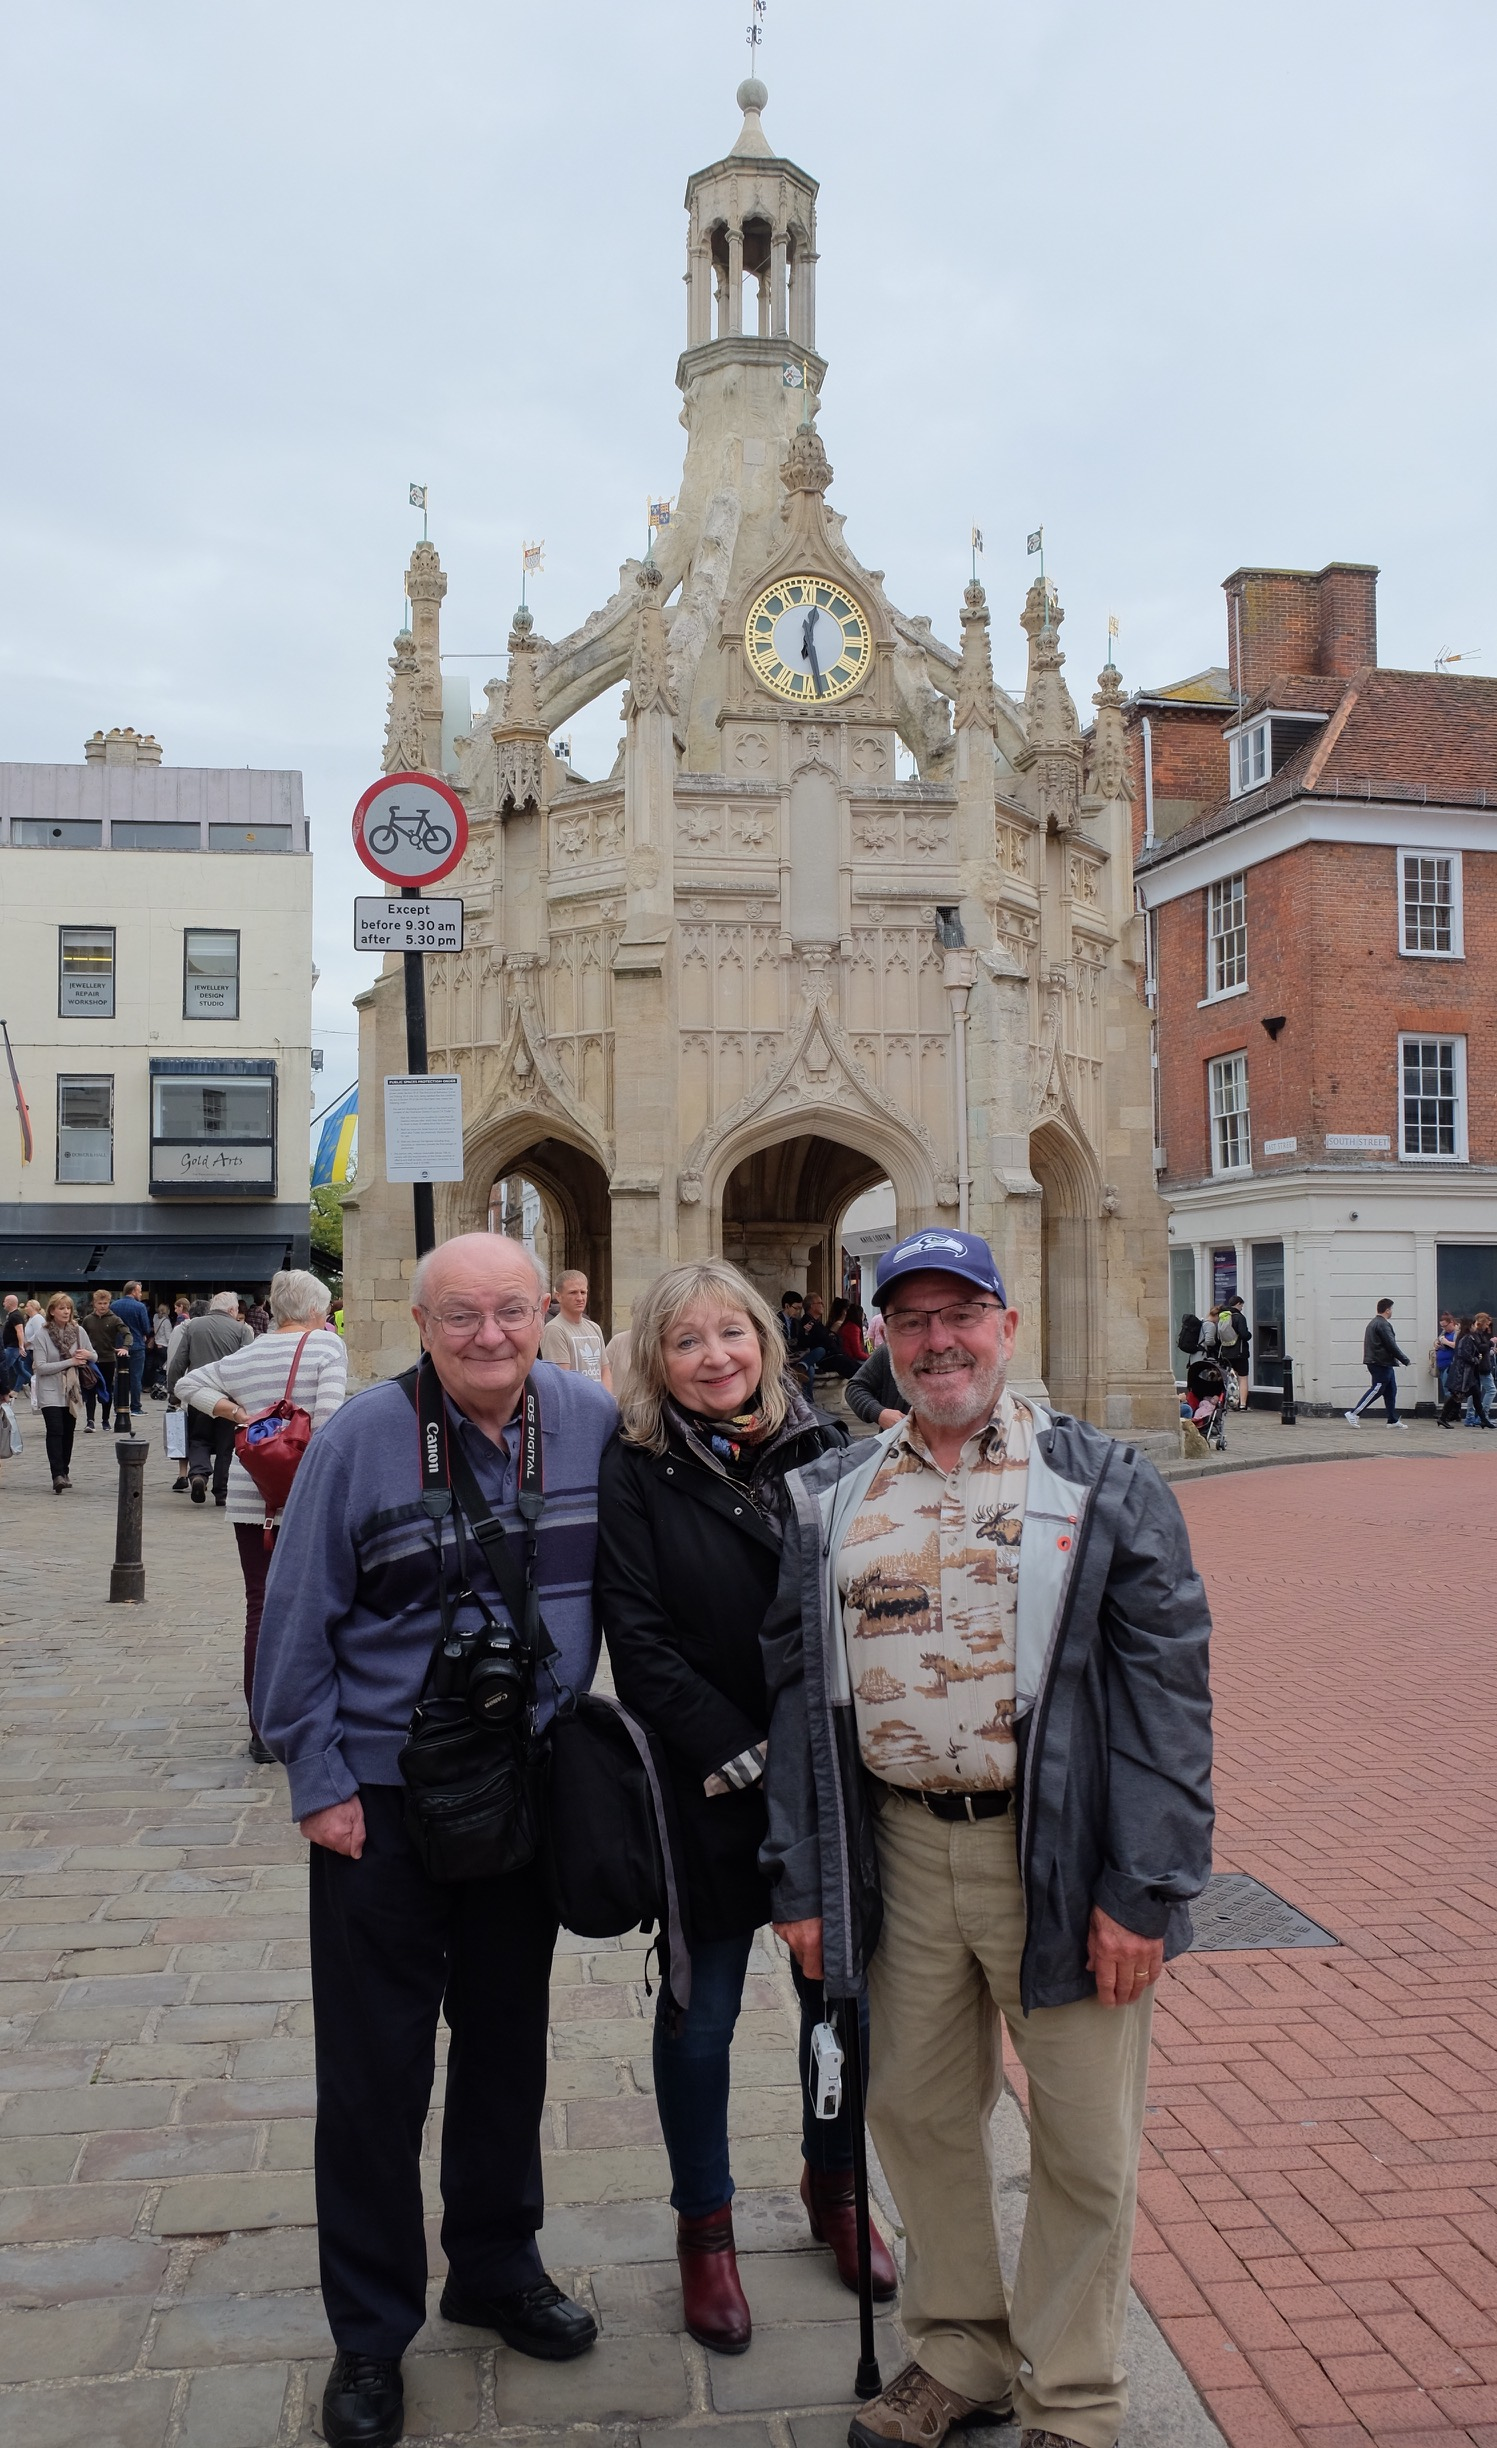 (r-l) Peter Hanley with his wife Uni and Ray Crook travelled to the reunion from North America. Peter spent many hours almost every day for the past year helping to organise the event in coordination with Derek Mottershead CREDIT: Ken Colley